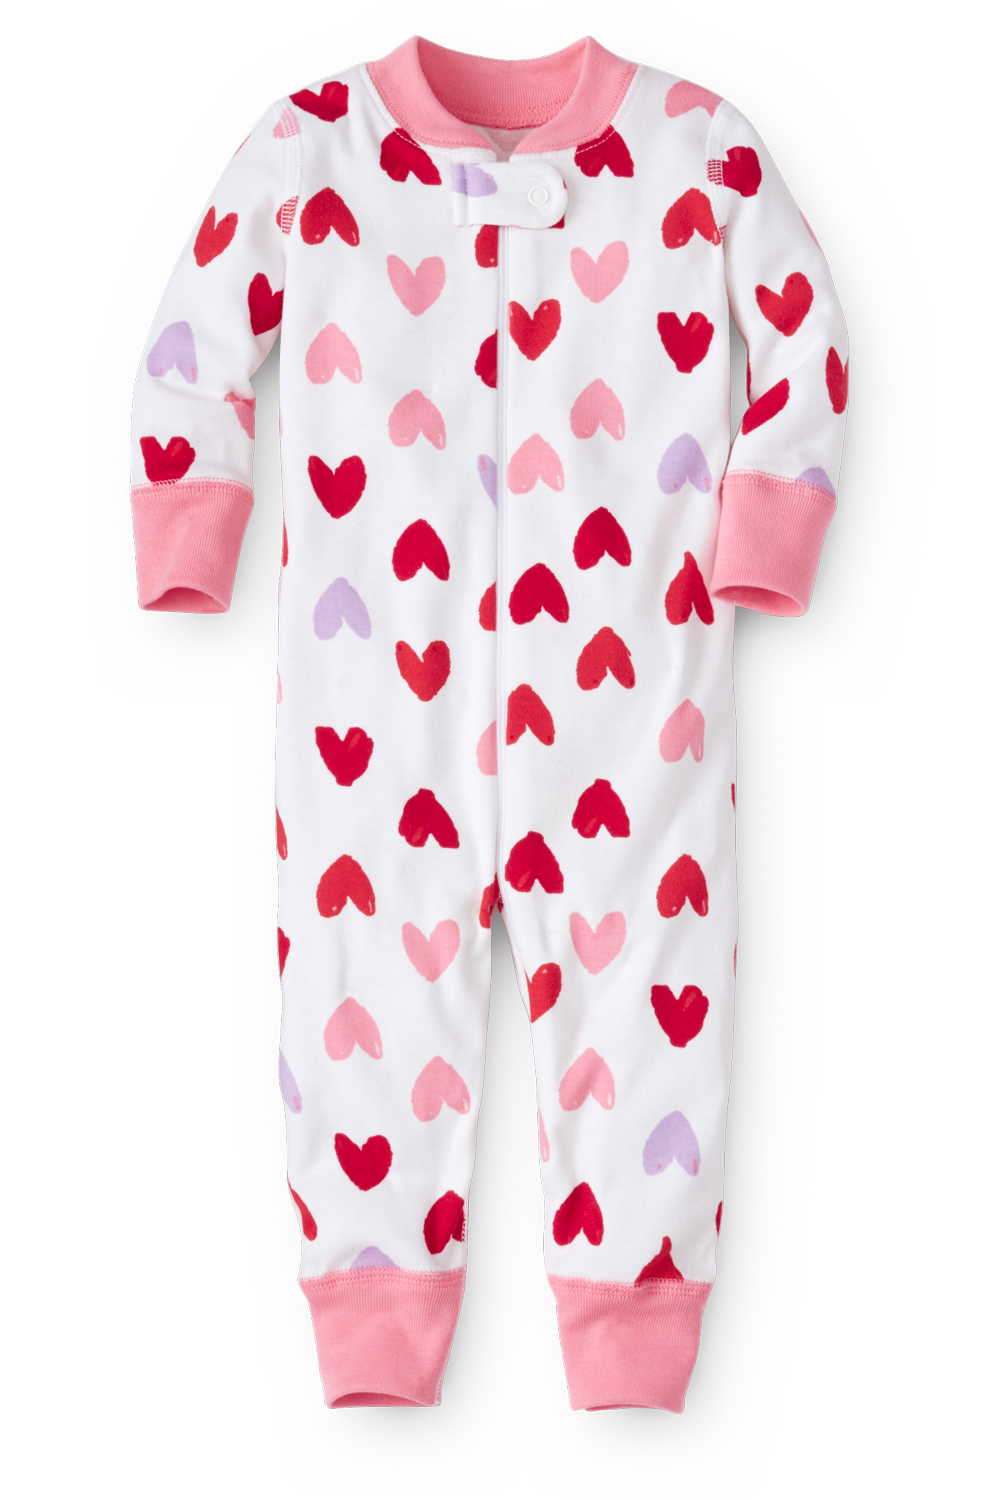 Valentine Hearts Baby Pajamas in Organic Cotton